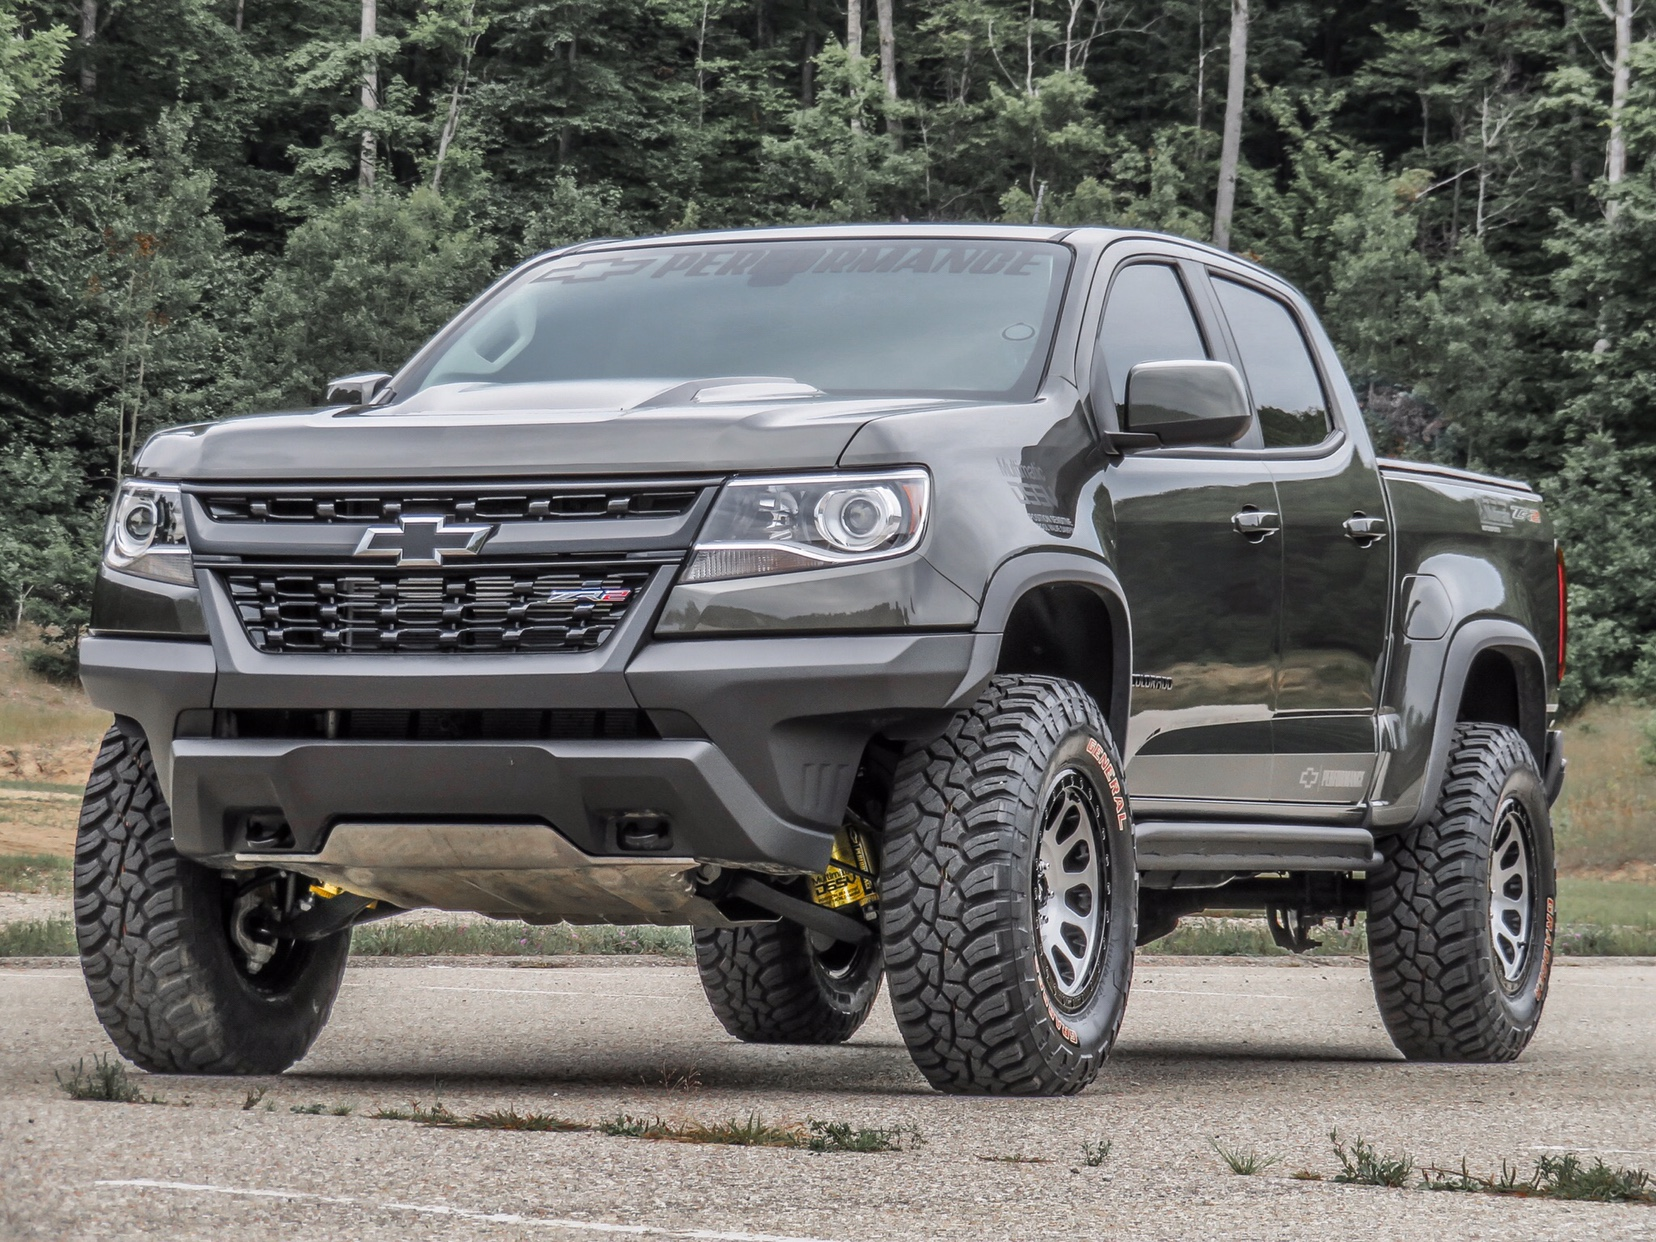 Lifted 2016 Canyon >> Need advice on front leveling kit. - Page 2 - Chevy Colorado & GMC Canyon